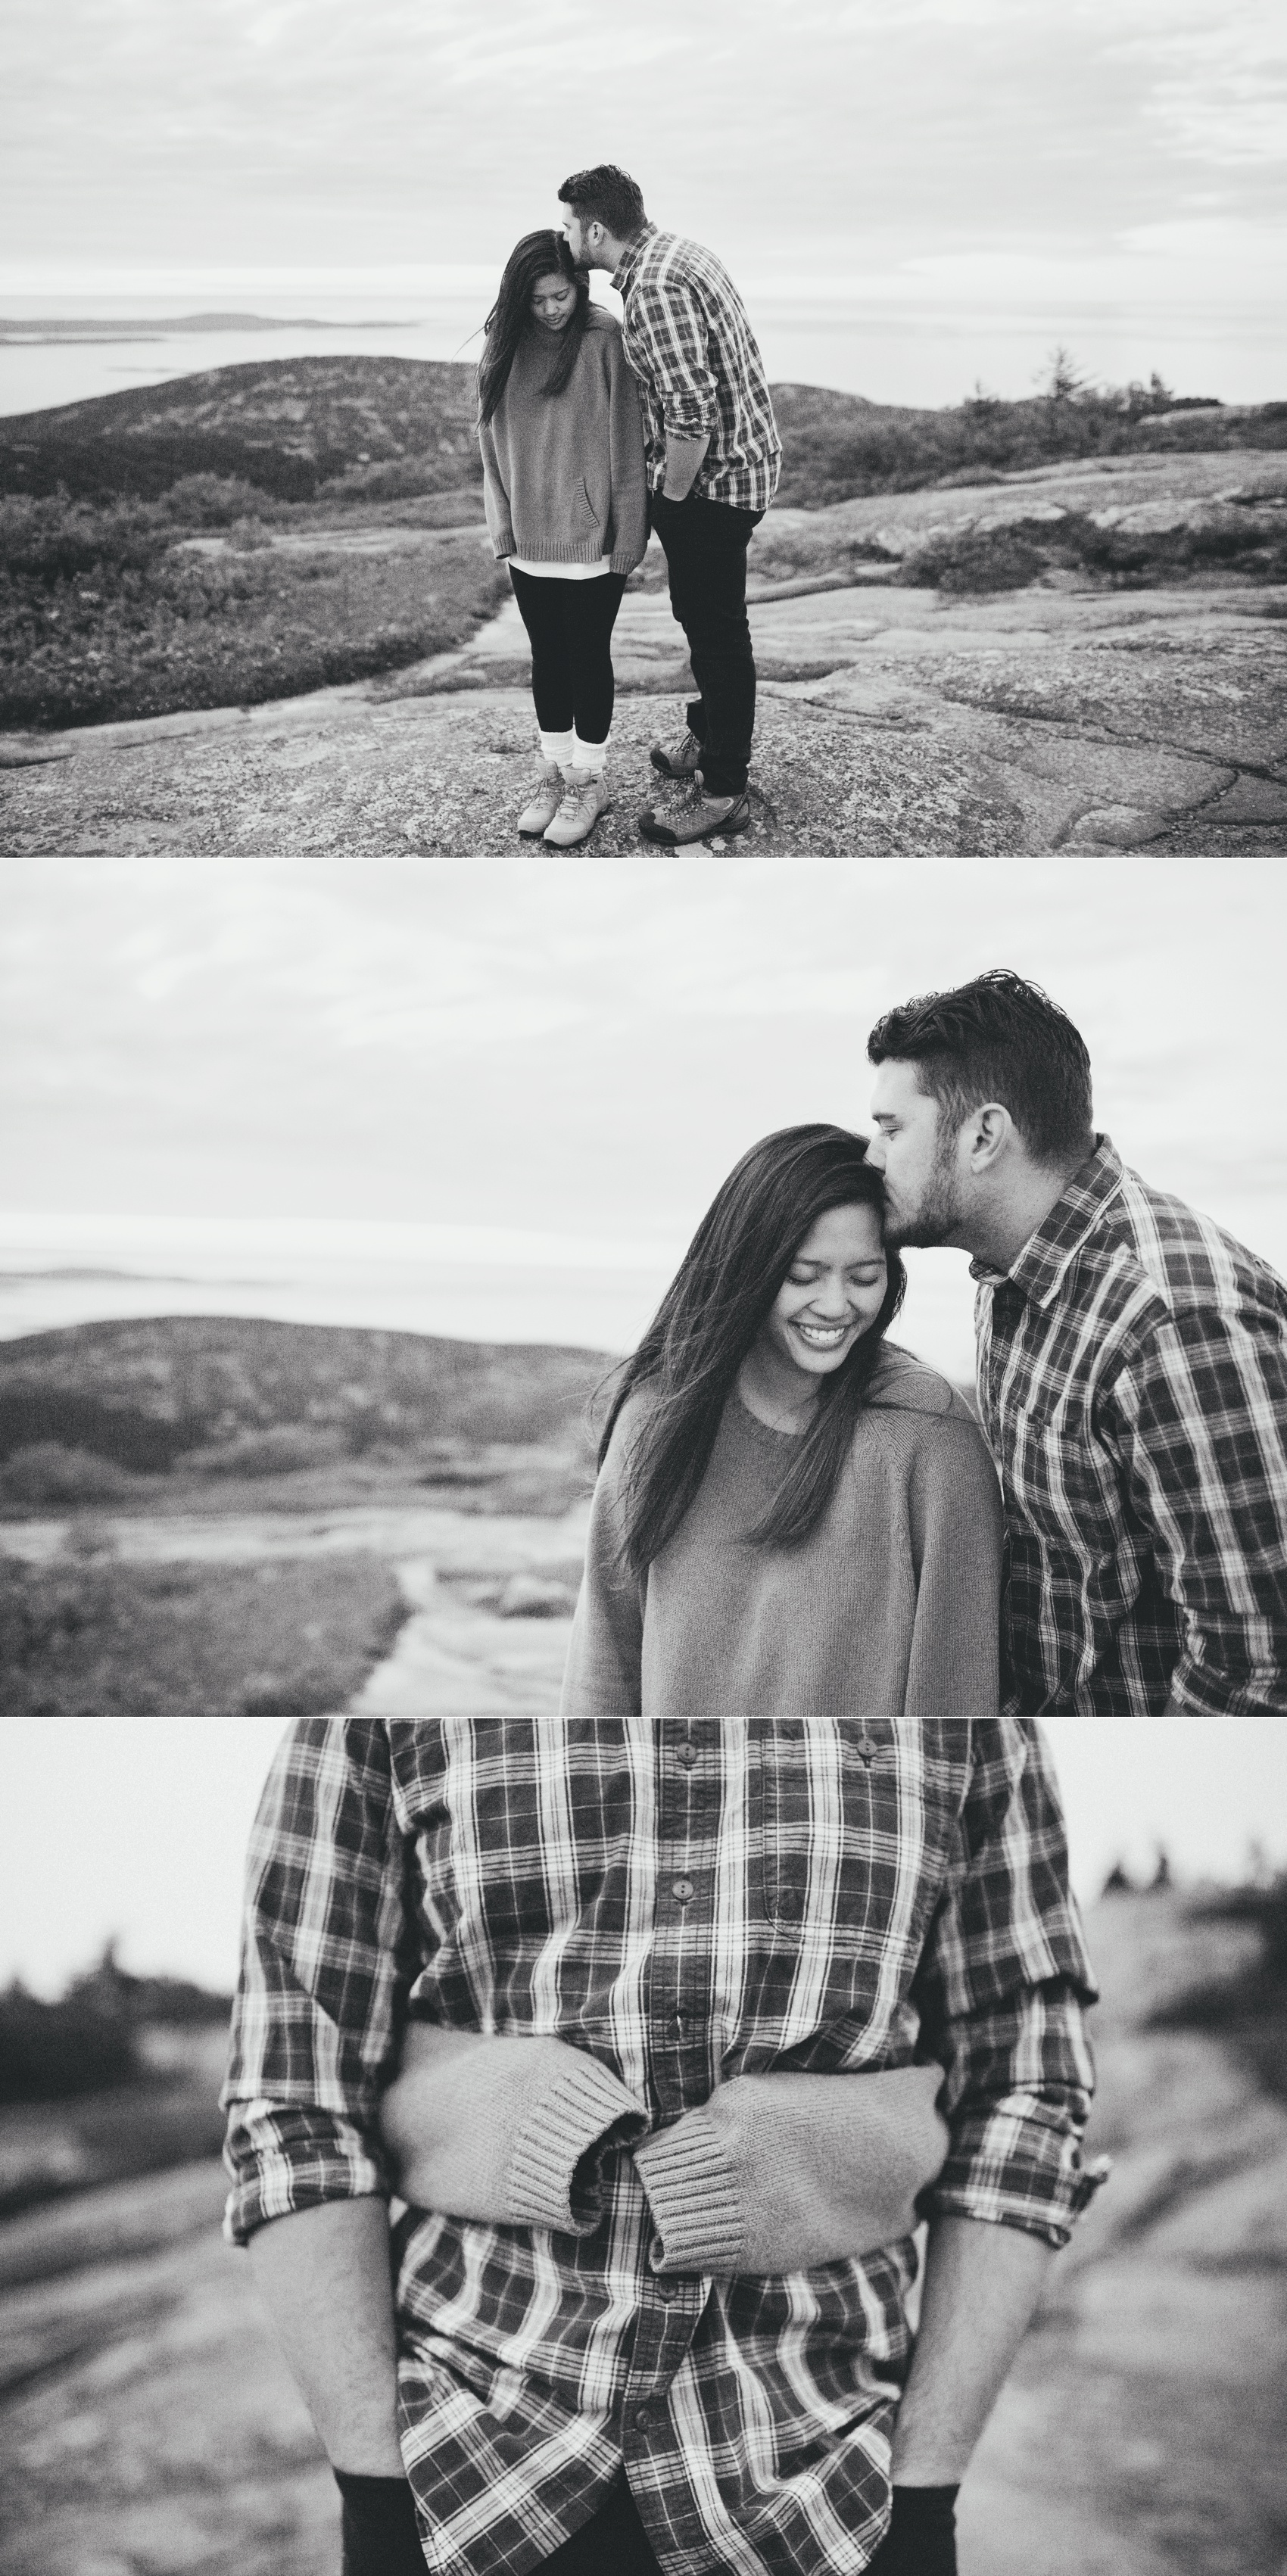 jake and jill acacdia national park engagement session cadillac mountain engagement session jordan pond engagement session maine engagement session jake and katie_0001